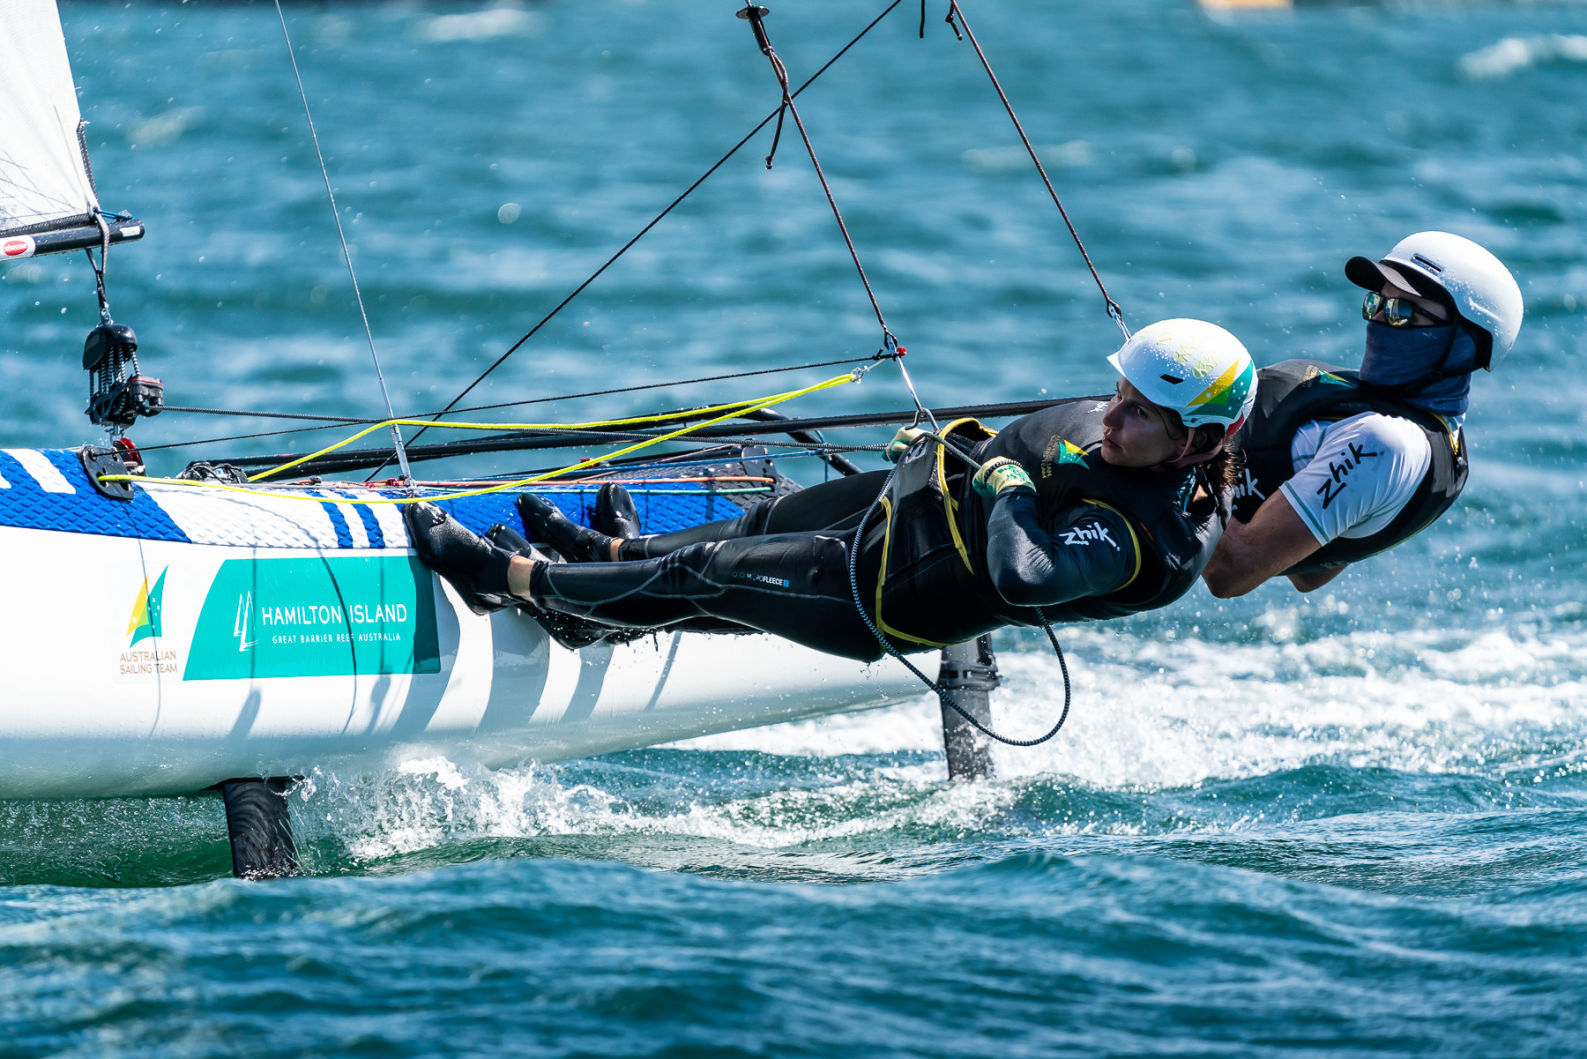 Nacra 17 sailors Jason Waterhouse and Lisa Darmanin are hoping to turn their silver medal into gold at Tokyo 2020.